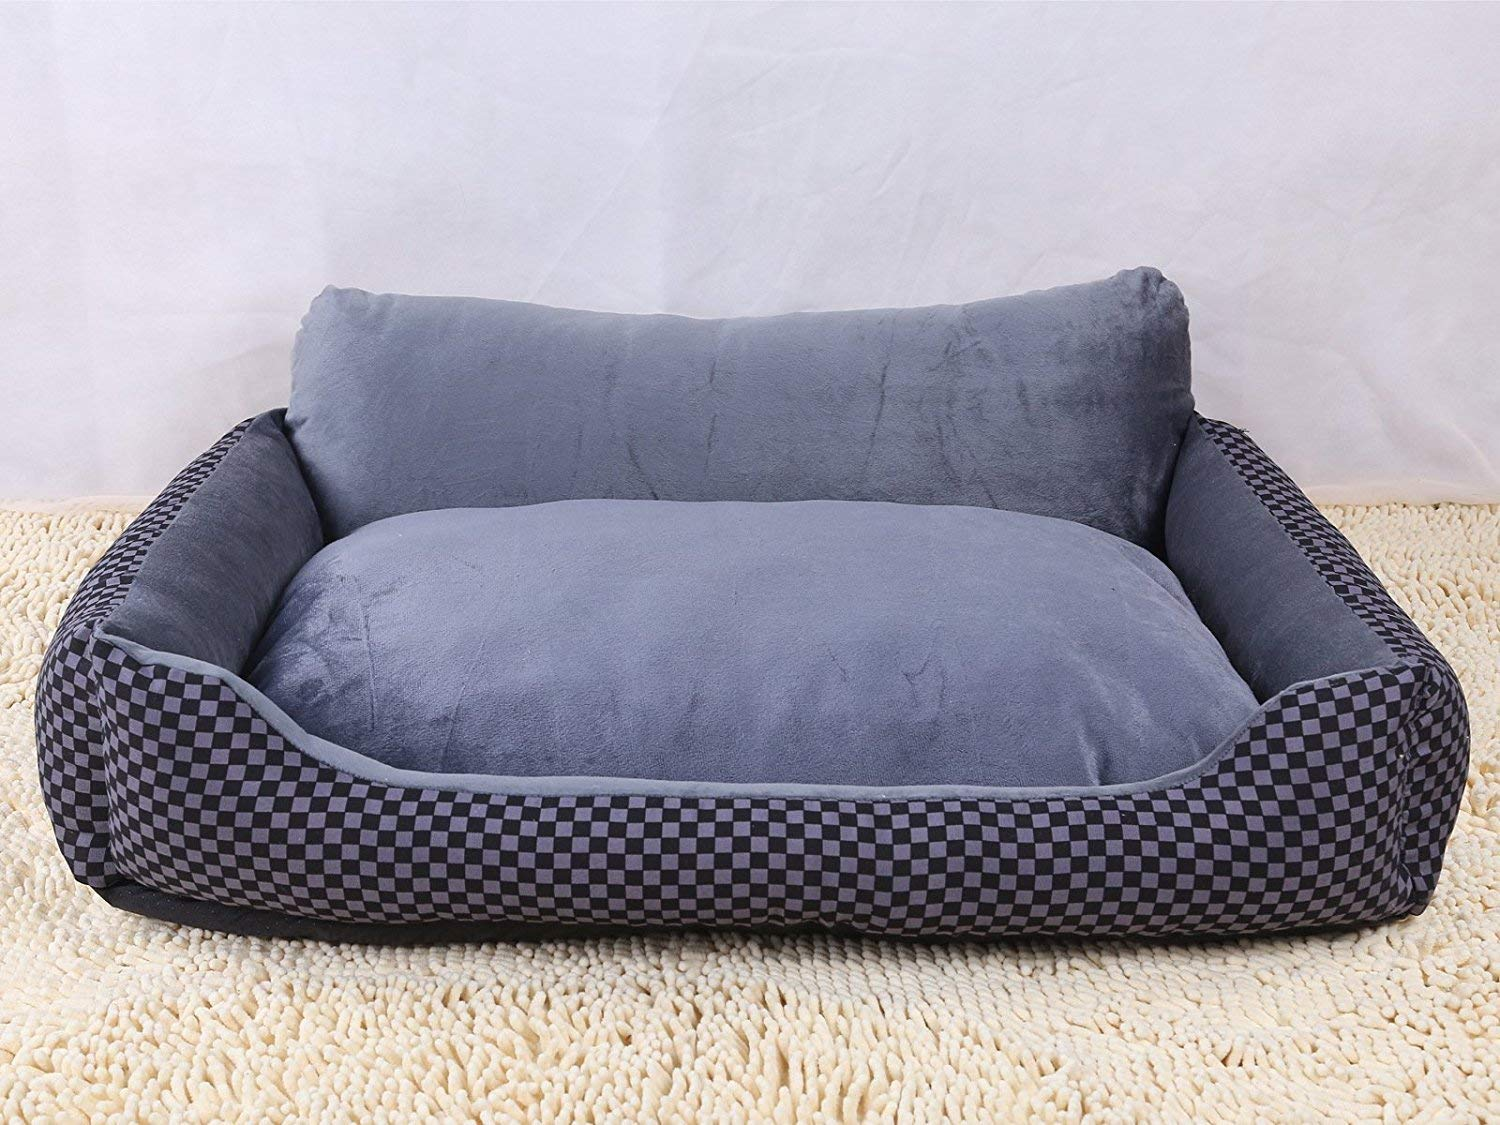 IANXI Home New Sofa Kennel Waterproof Dog Pet Cat Bed Mat Cushion Washable Ultra-Soft Plush Fabric Soft Cover Black with Grey 70X50X21CM for Cat Dog